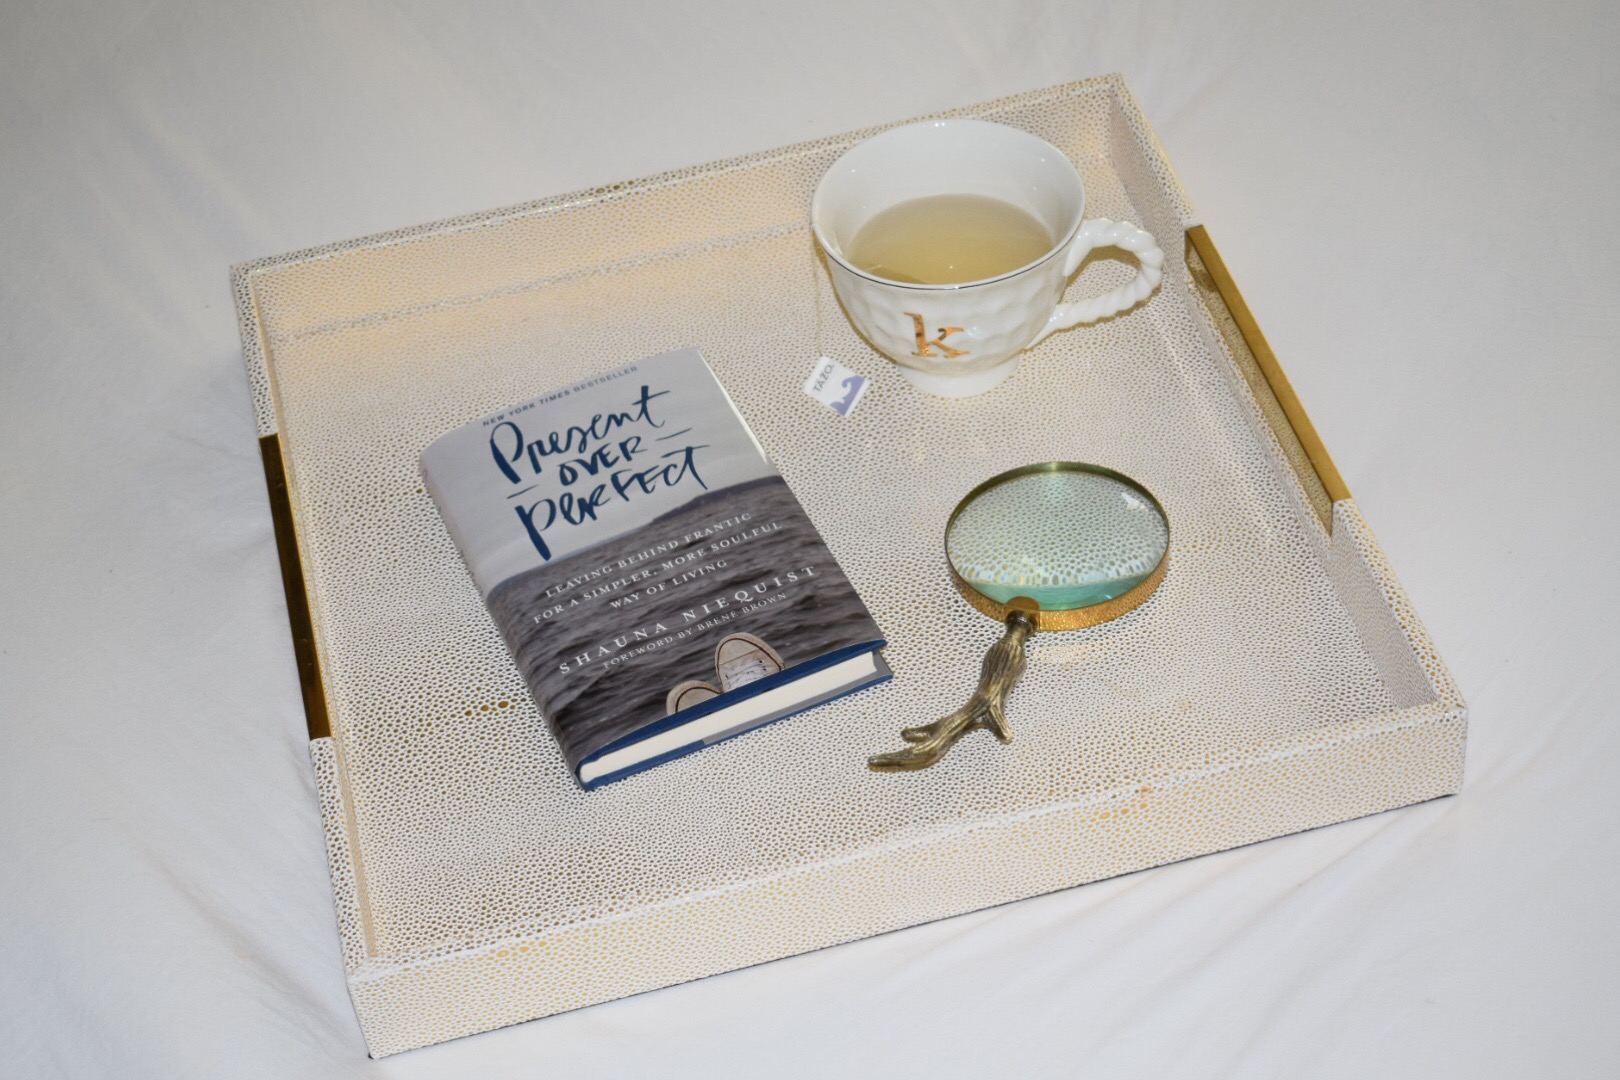 Present Over Perfect by Shauna Niequist on gold tray with antler magnifying glass